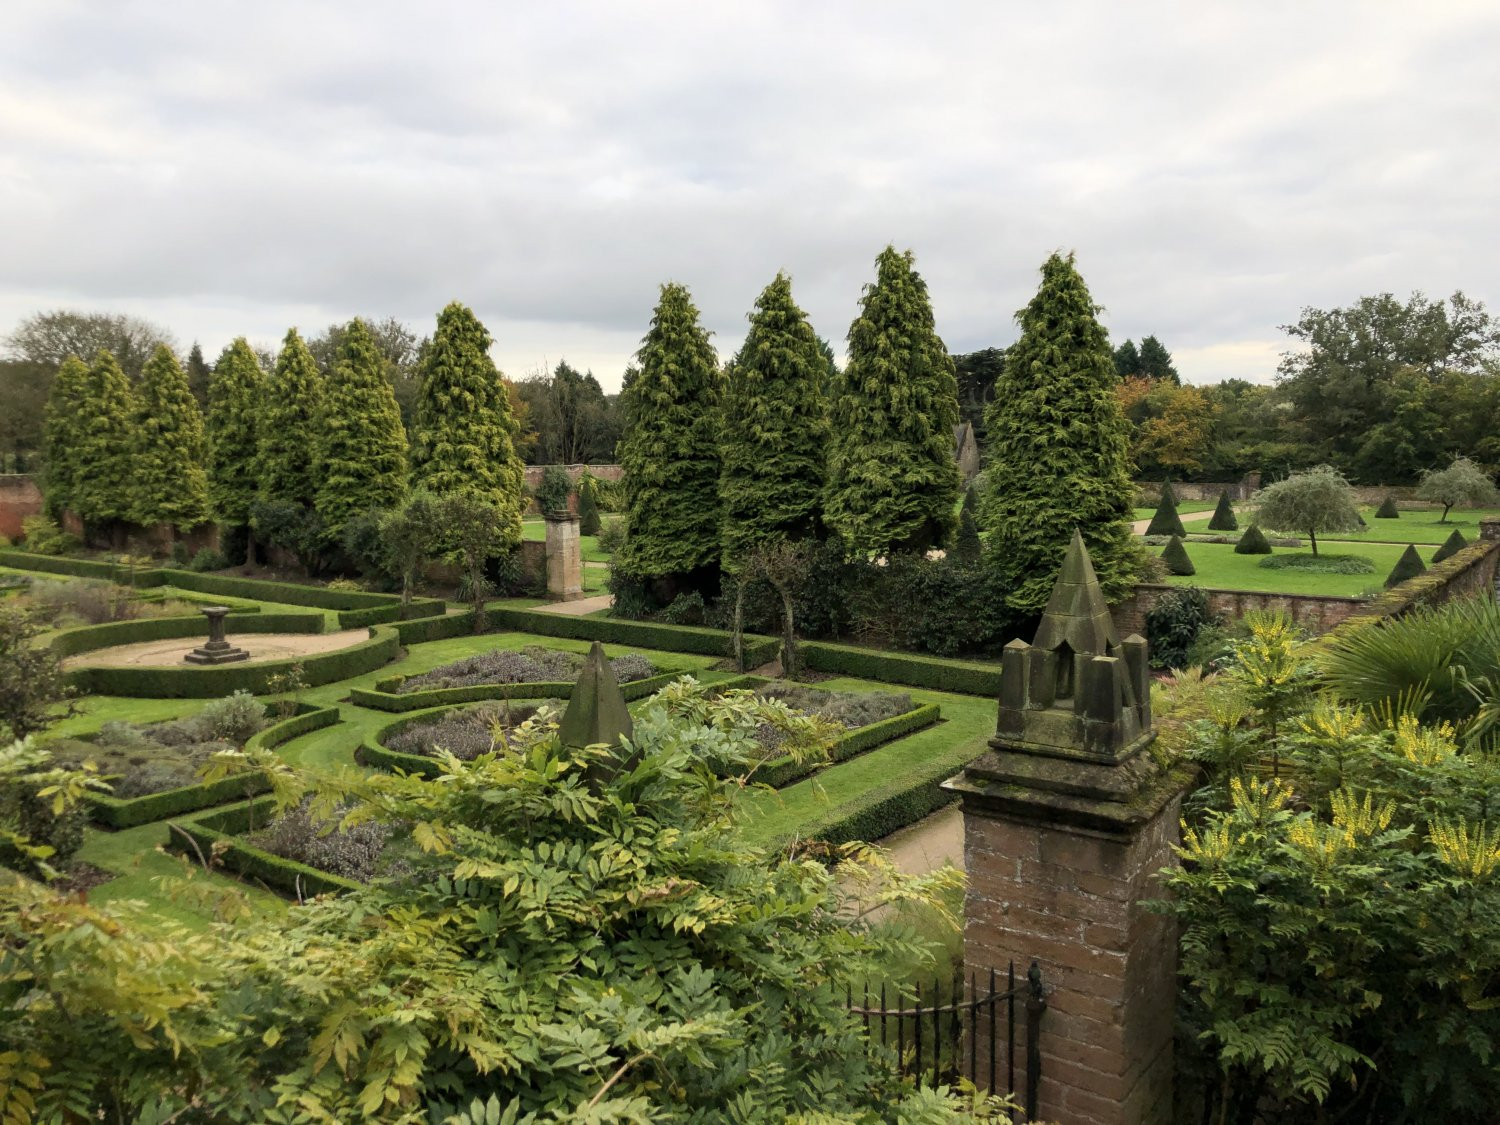 The Small Walled Garden Buxus Parterre